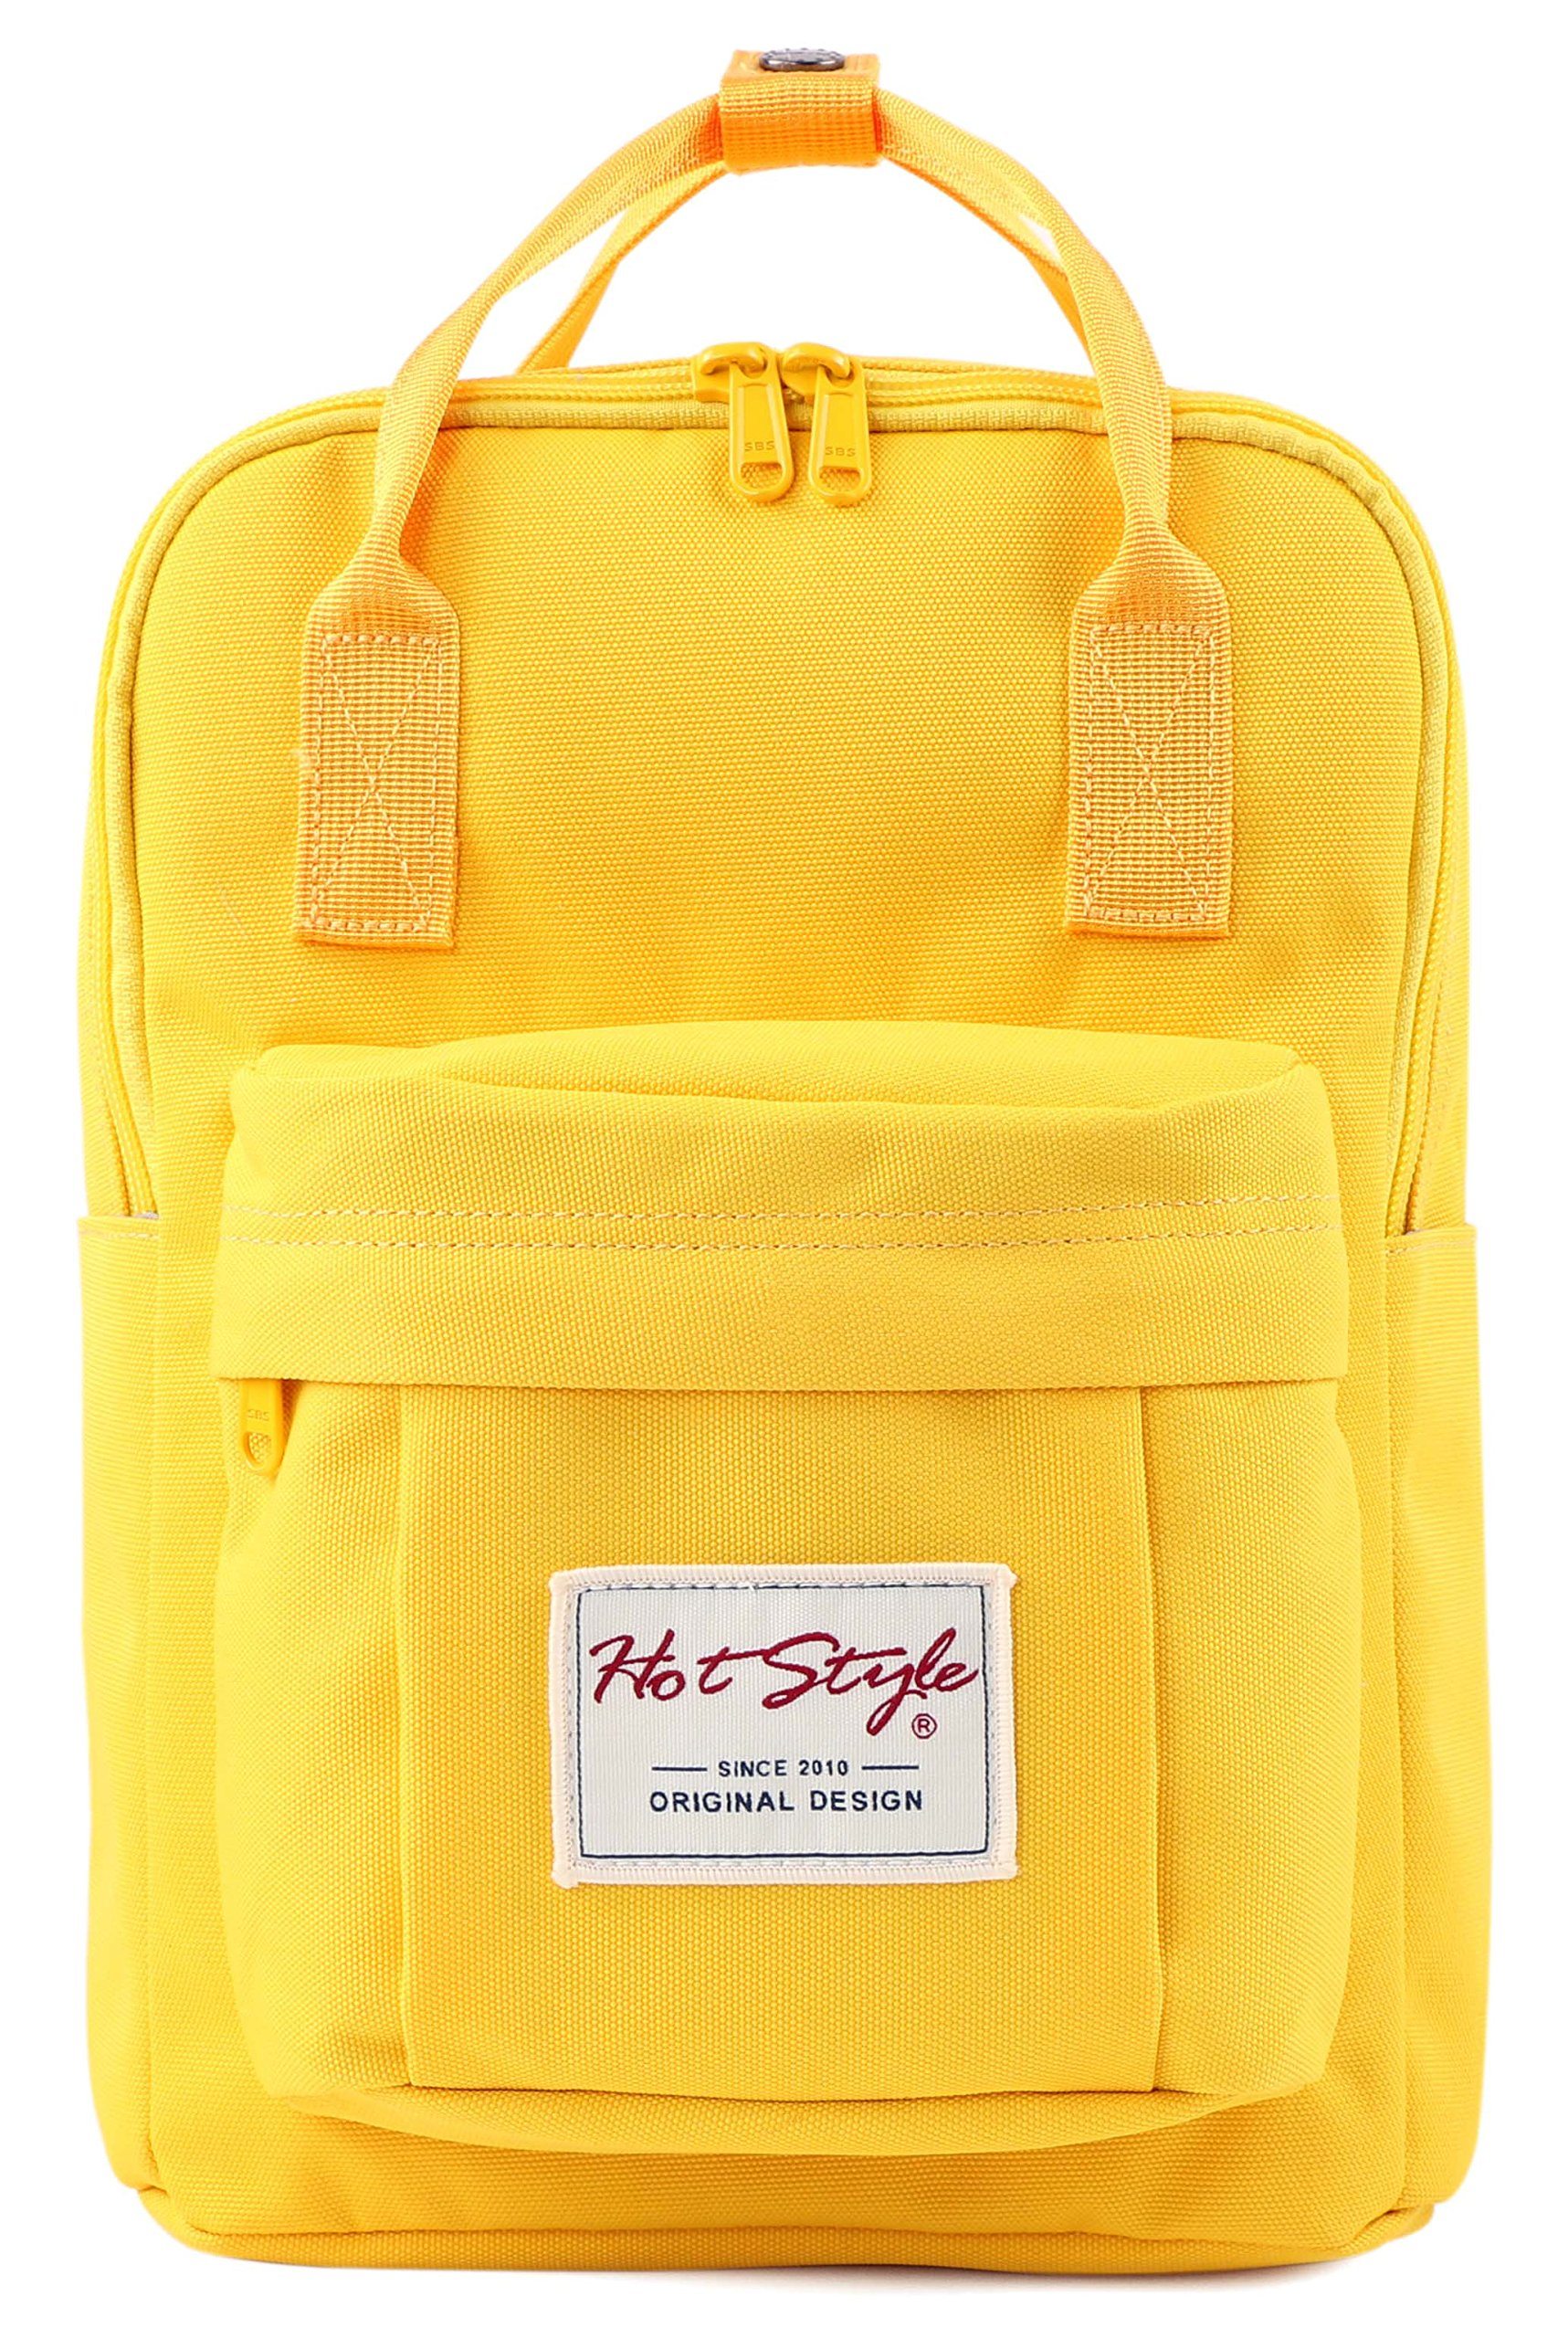 BESTIE 12'' Cute Mini Small Backpack Purse Travel Bag - Yellow